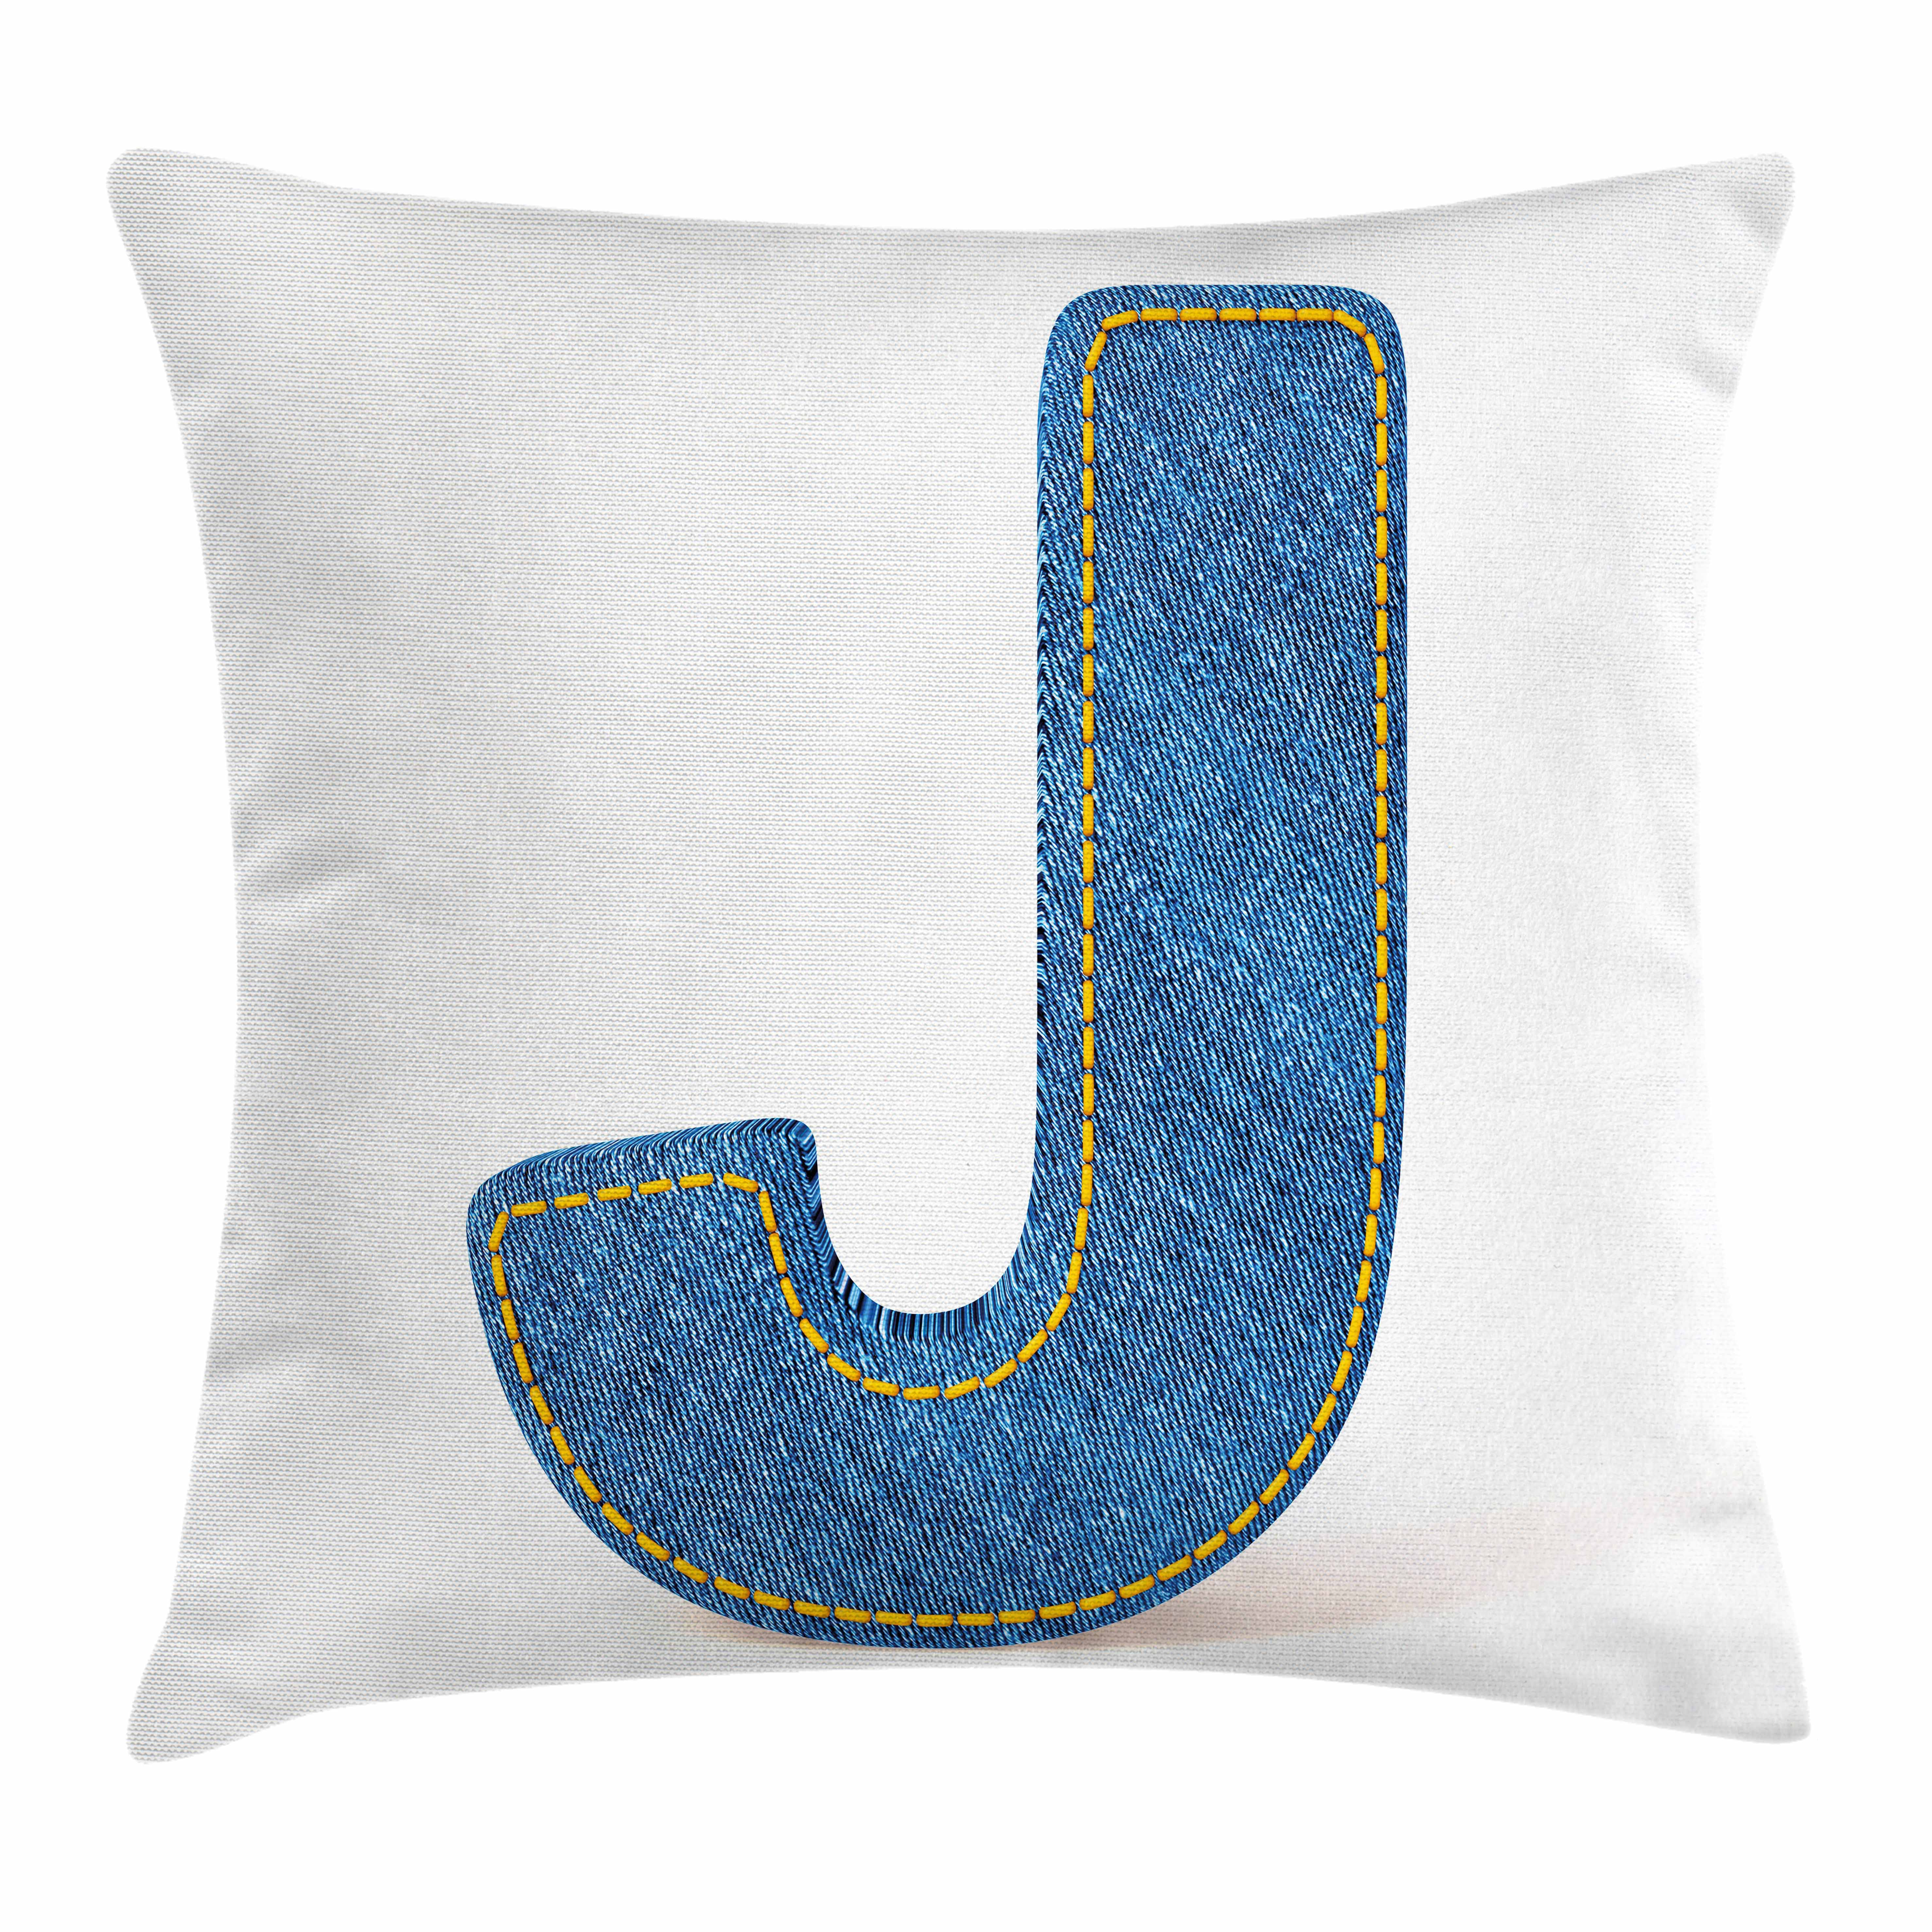 Letter J Throw Pillow Cushion Cover, Blue Jean Patterned Denim Alphabet Font Design Capitalized J Letter Cloth Style, Decorative Square Accent Pillow Case, 16 X 16 Inches, Blue Marigold, by Ambesonne